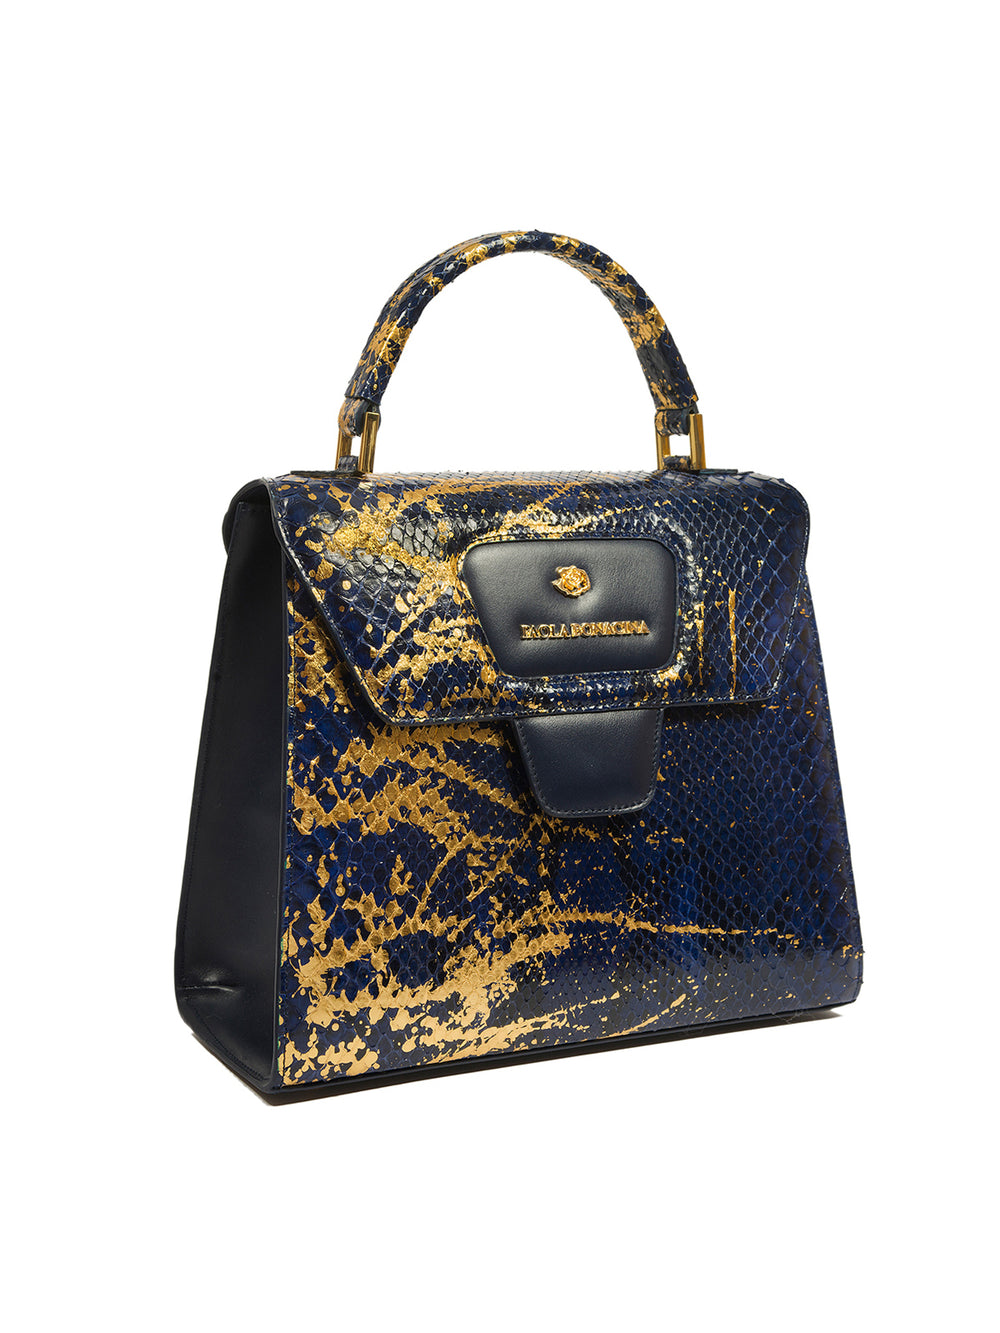 Grace Top Handle Bag, PAOLA BONACINA - elilhaam.com